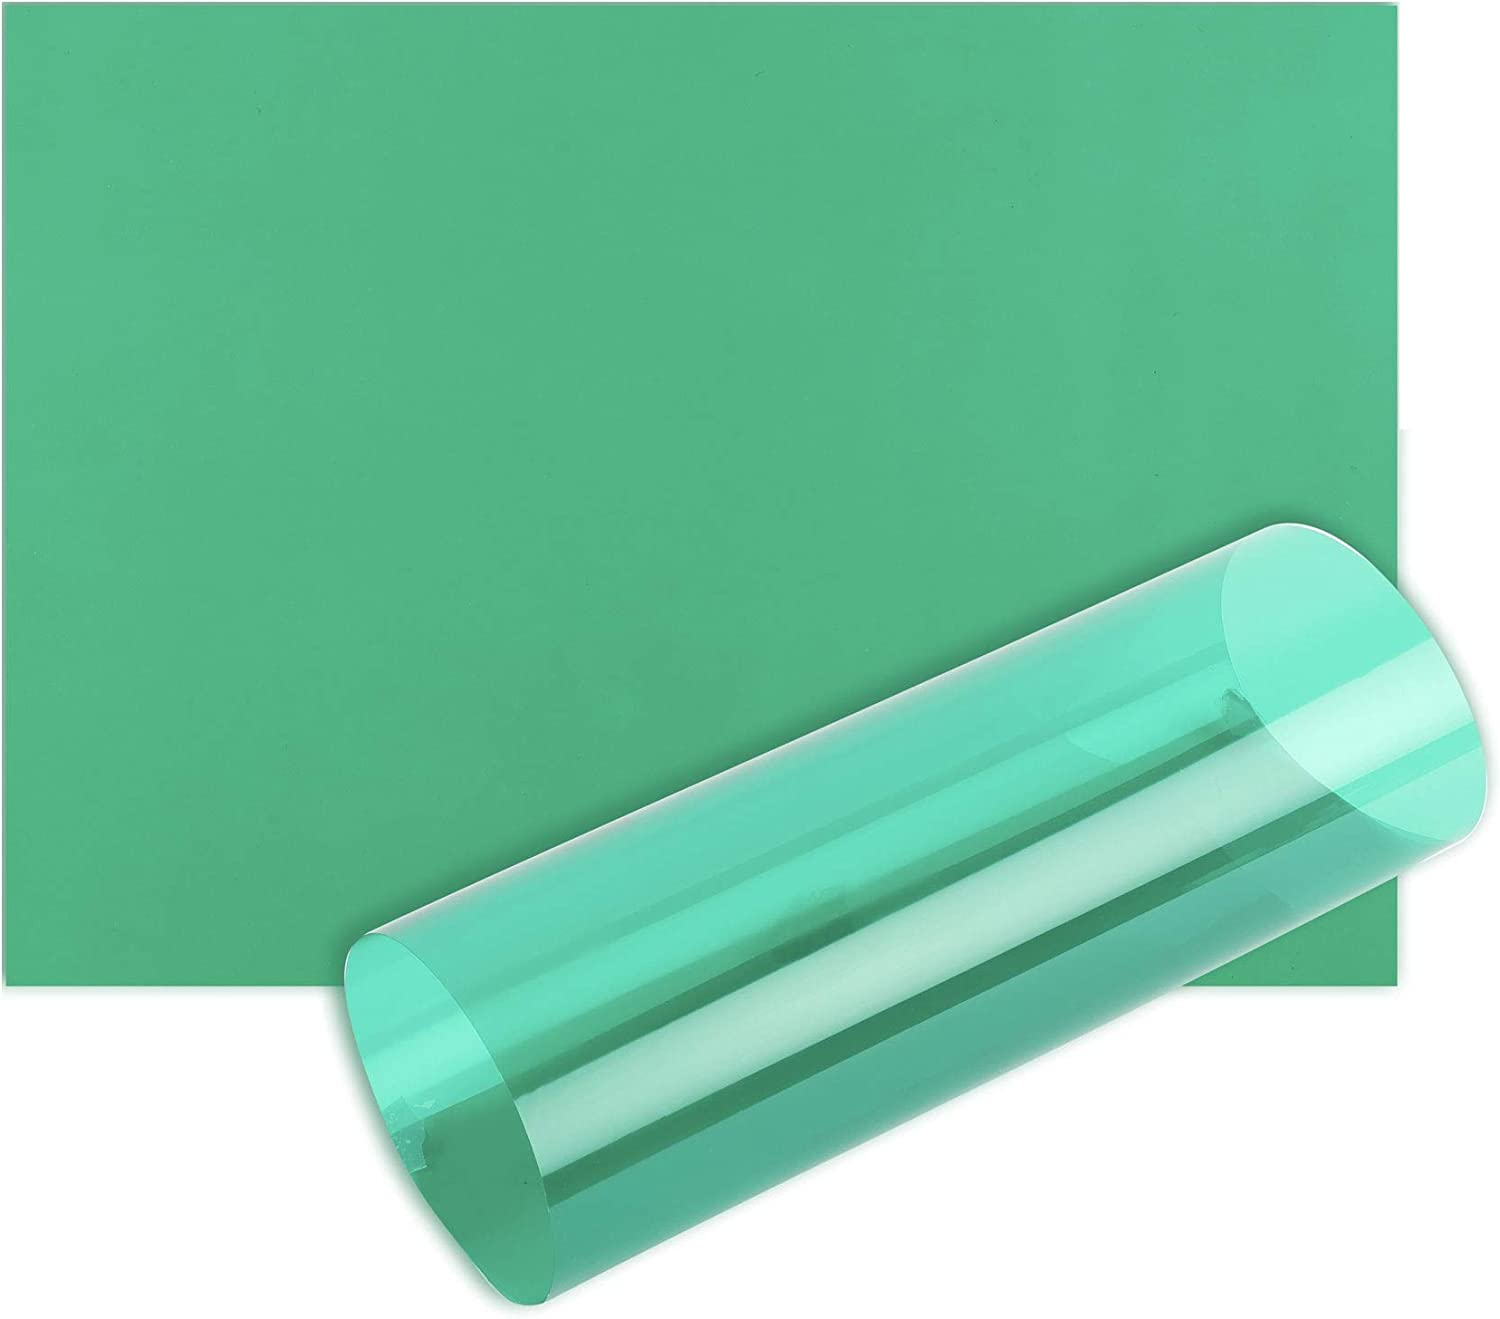 1 Sheet - A4-21cm x 29.7cm Green Acetate Sheets OHP Film A4 Acetate Sheet Tinted Page Overlays Reading Aid Colour Clear Plastic Craft Thick